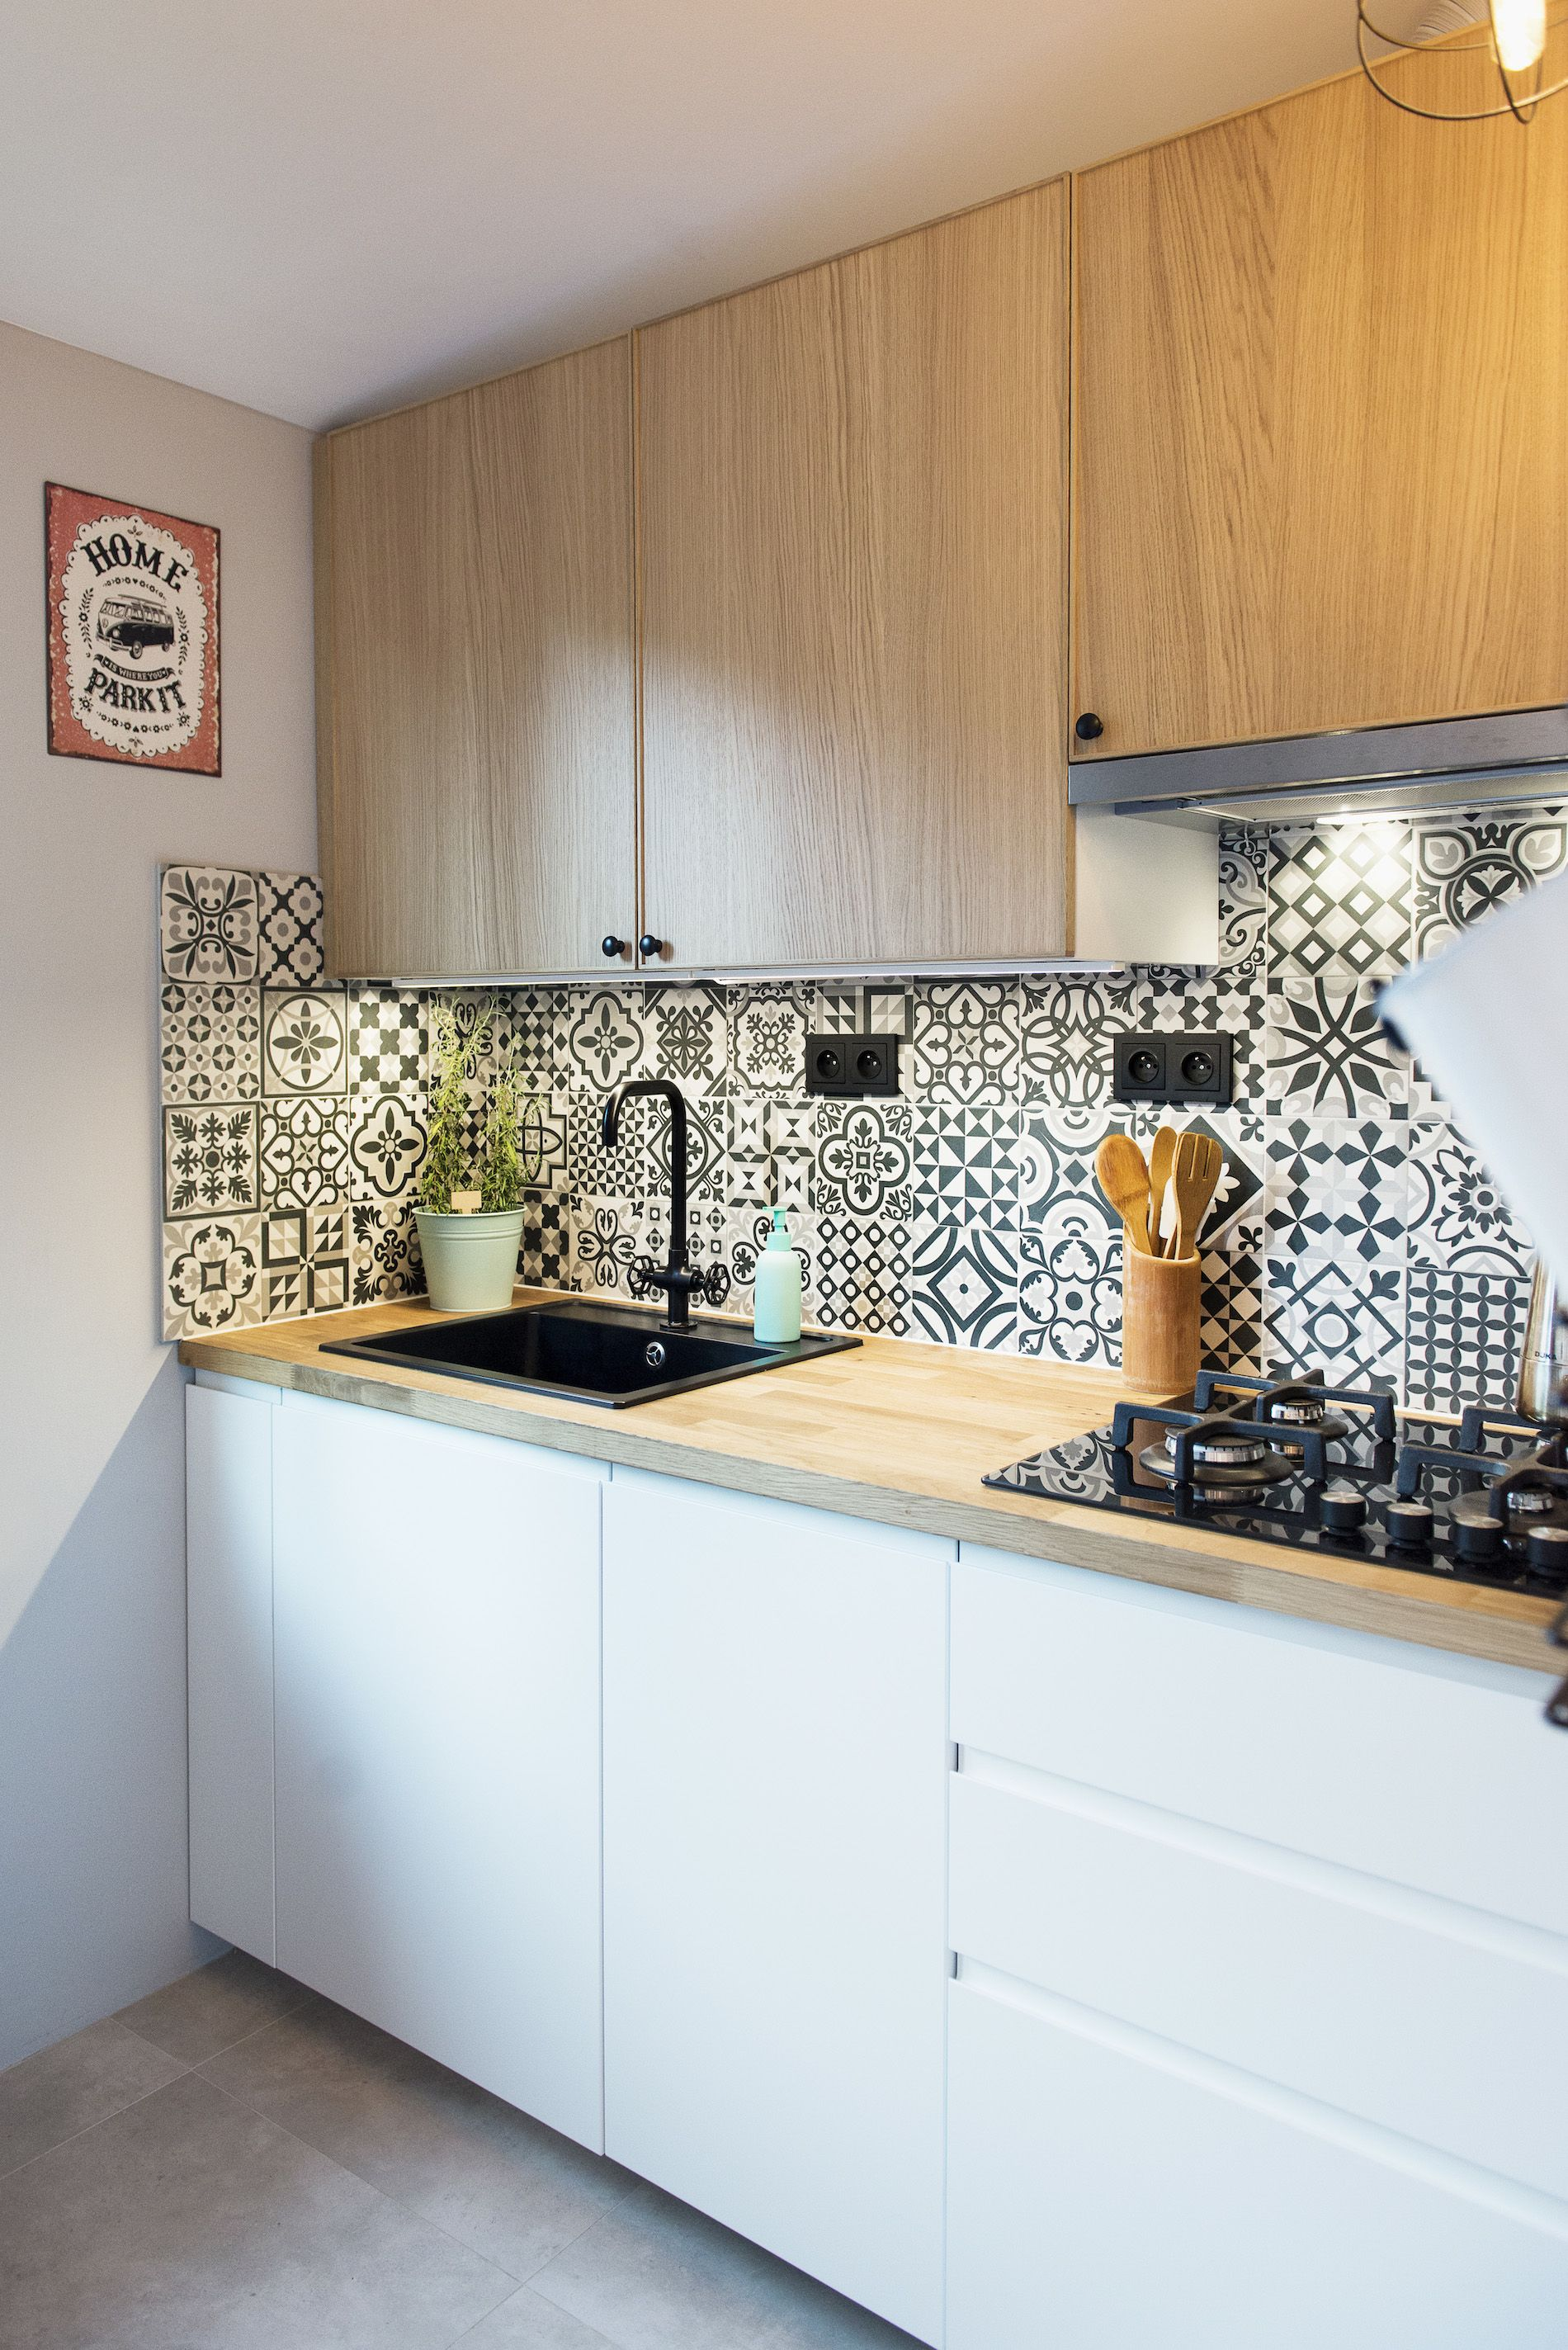 Charming and ecclectic microkitchen. Two collections of